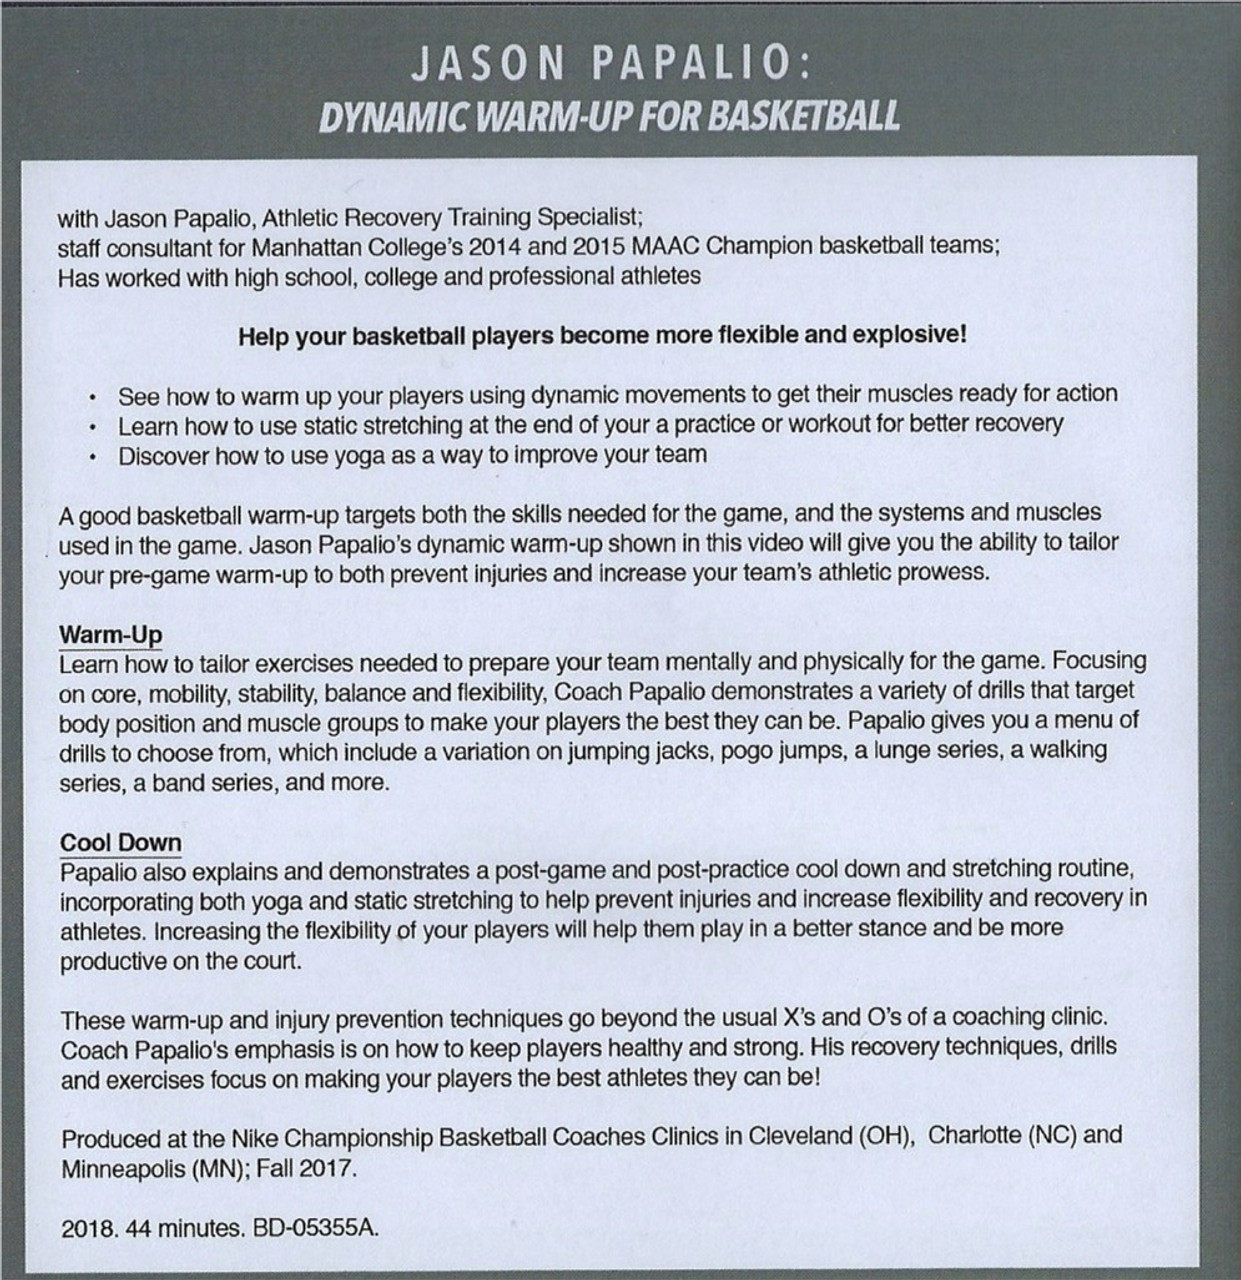 Dynamic Warm-up Drills For Basketball by Jason Papalio